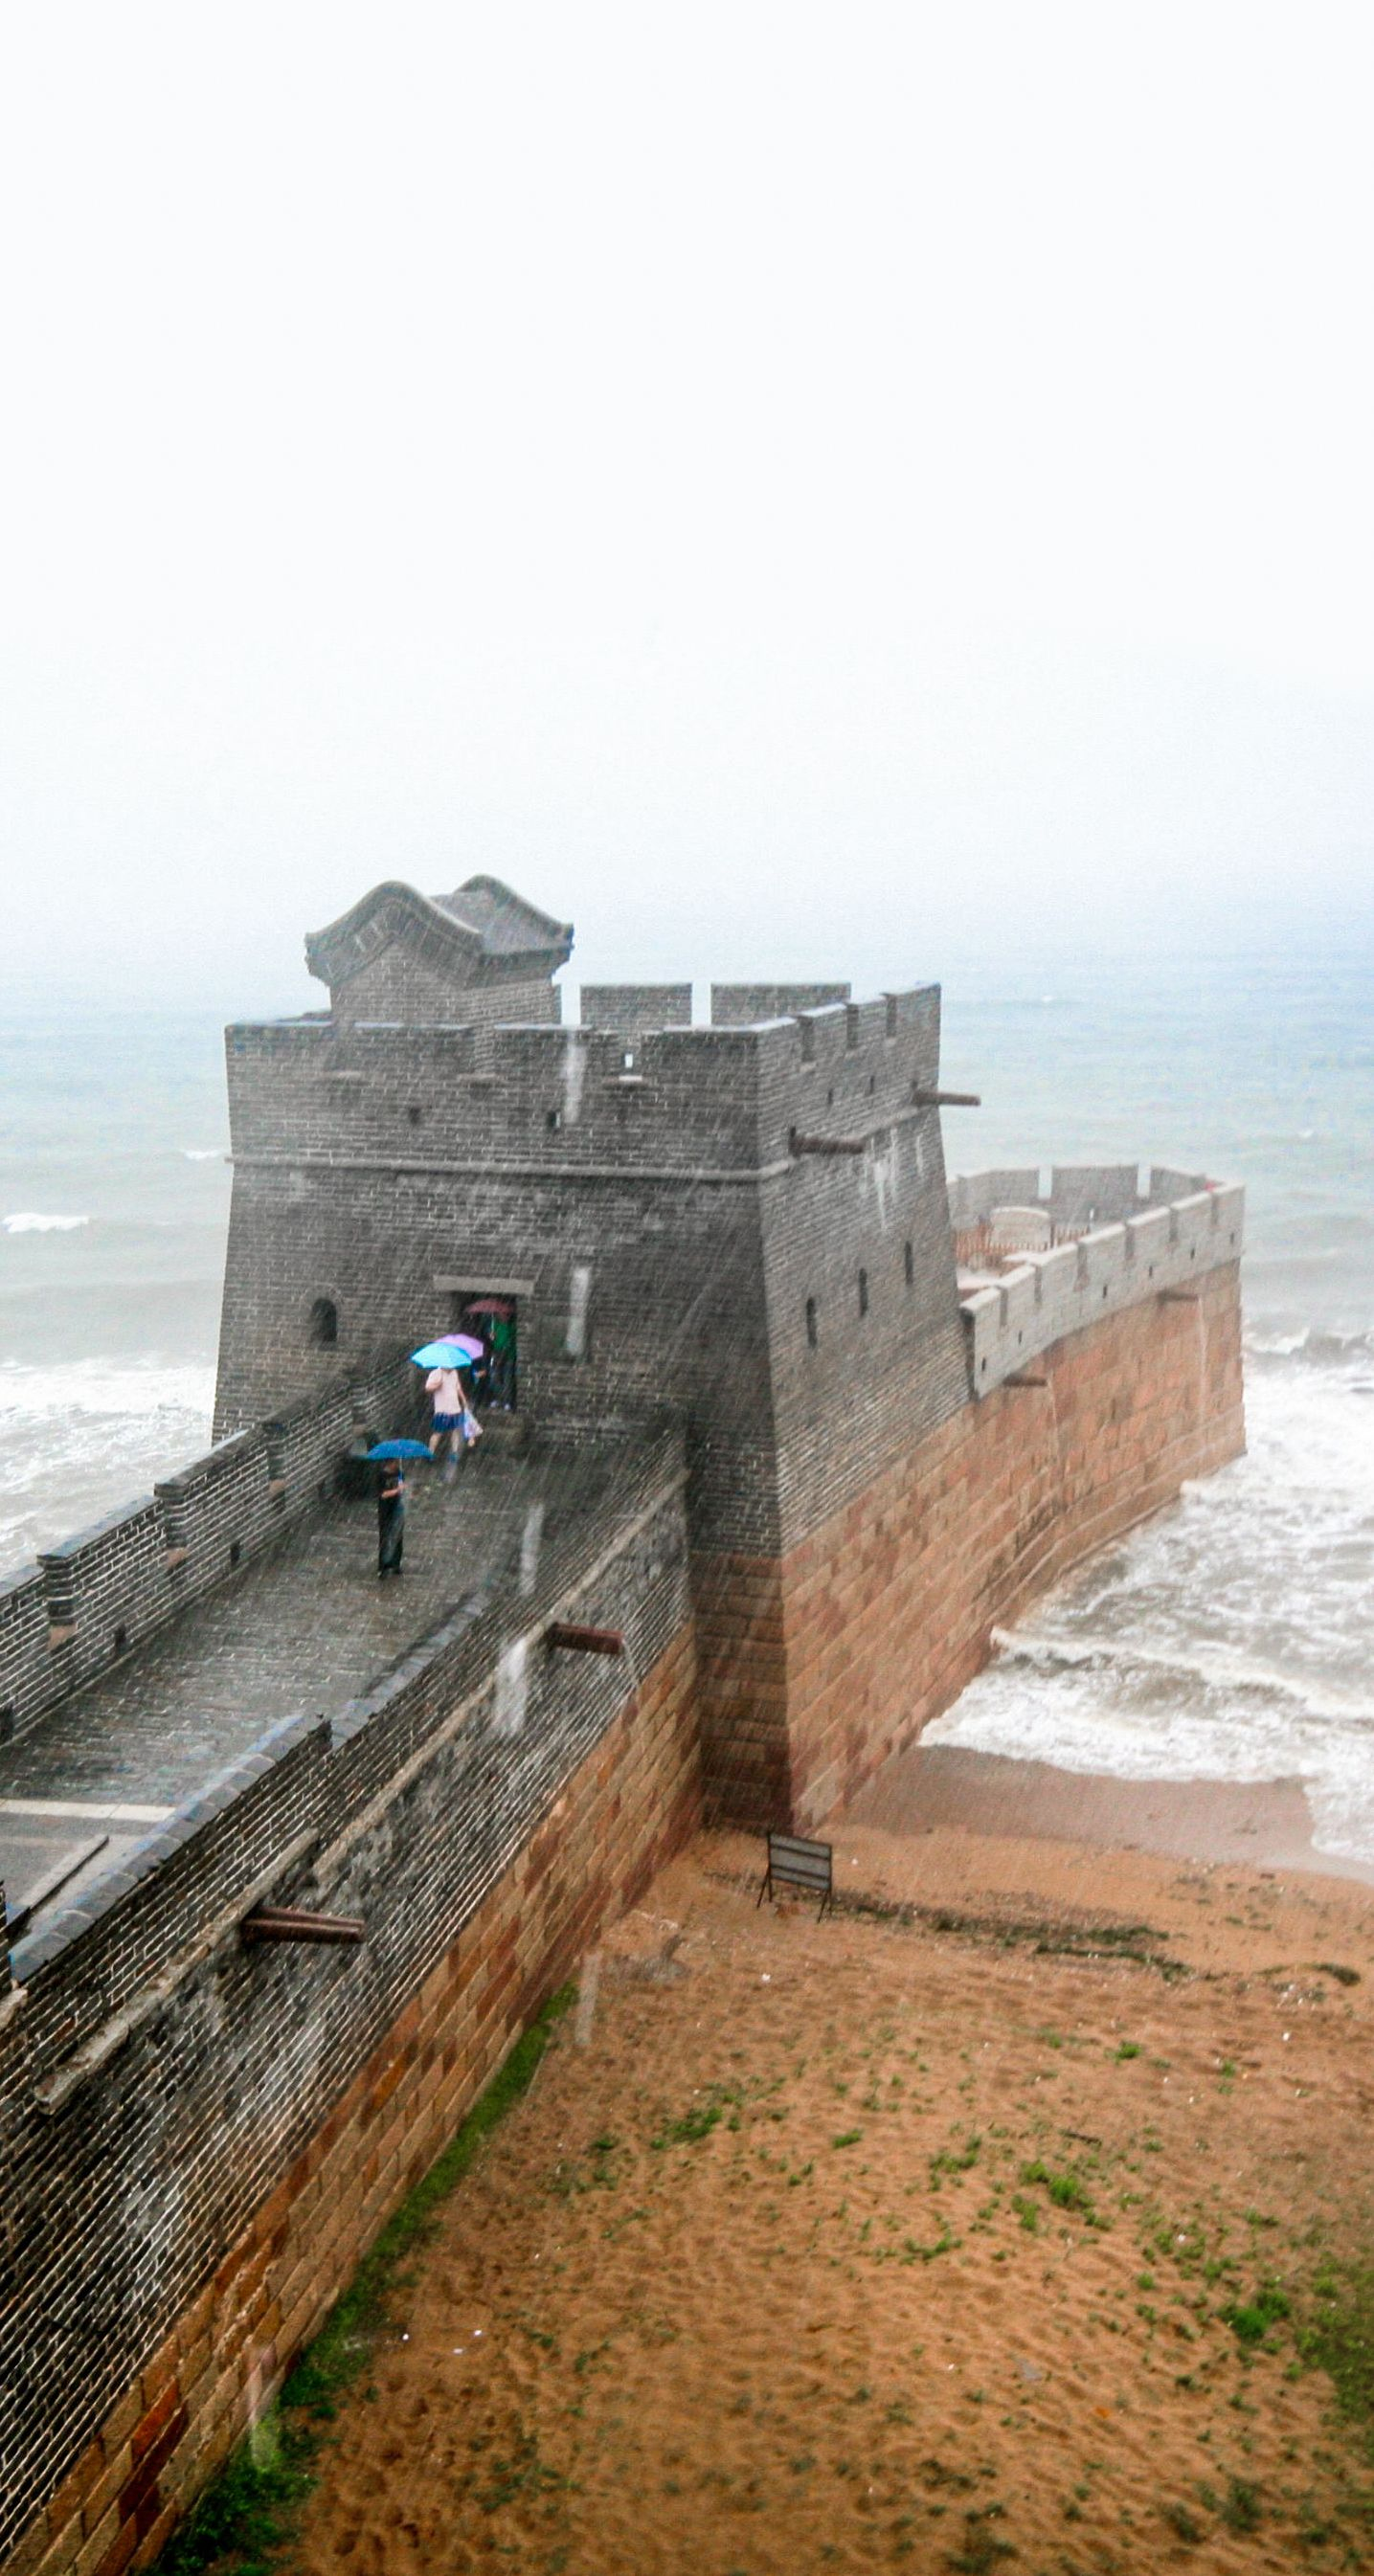 the great wall of china where it ends at the bohai sea on great wall of china id=53189